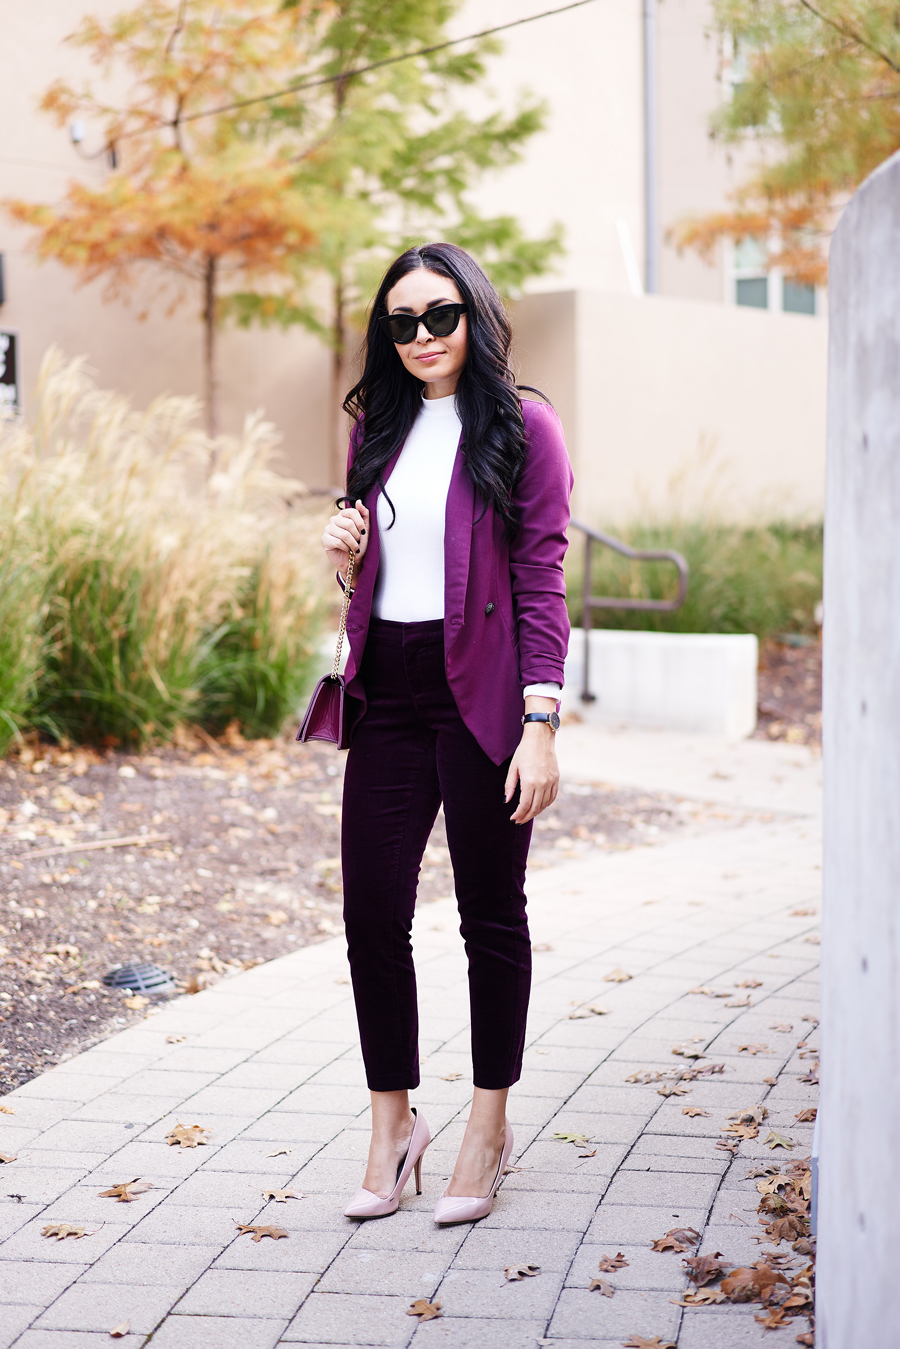 A Holiday Outfit You Probably Have in Your Closet Right Now